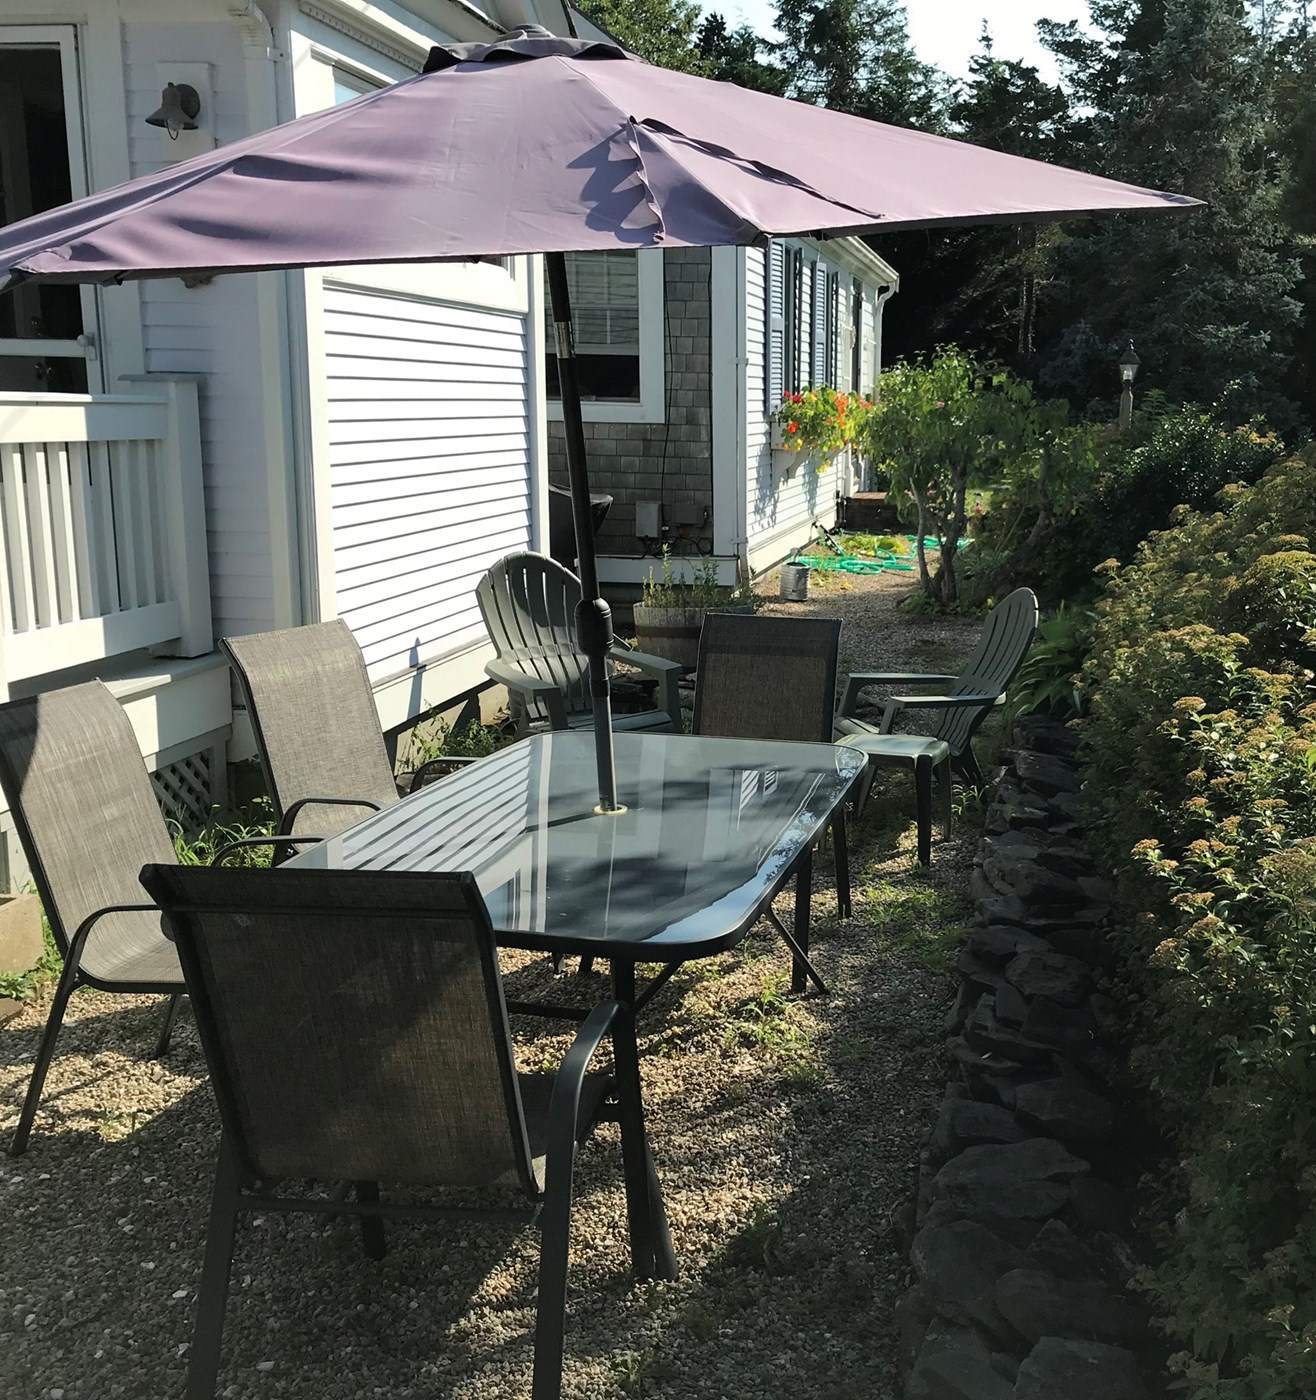 Orleans Vacation Rental Home In Cape Cod MA 02653, 5-10